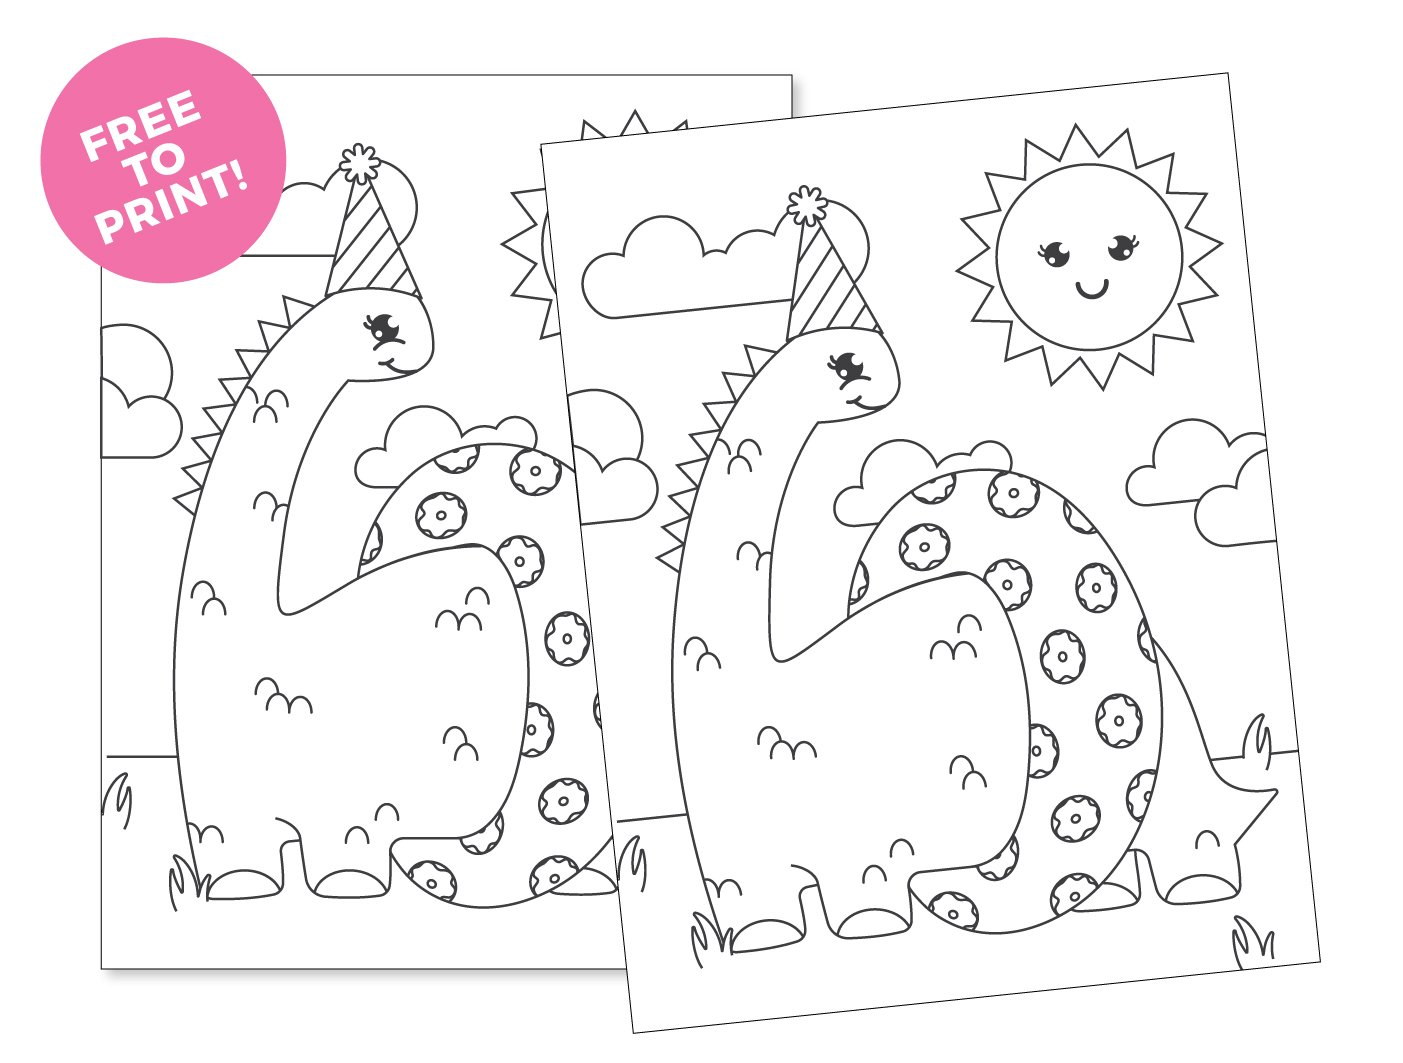 graphic about Printable Dinosaur Coloring Pages called Printable Dinosaur Coloring Web site - Structure Take in Repeat